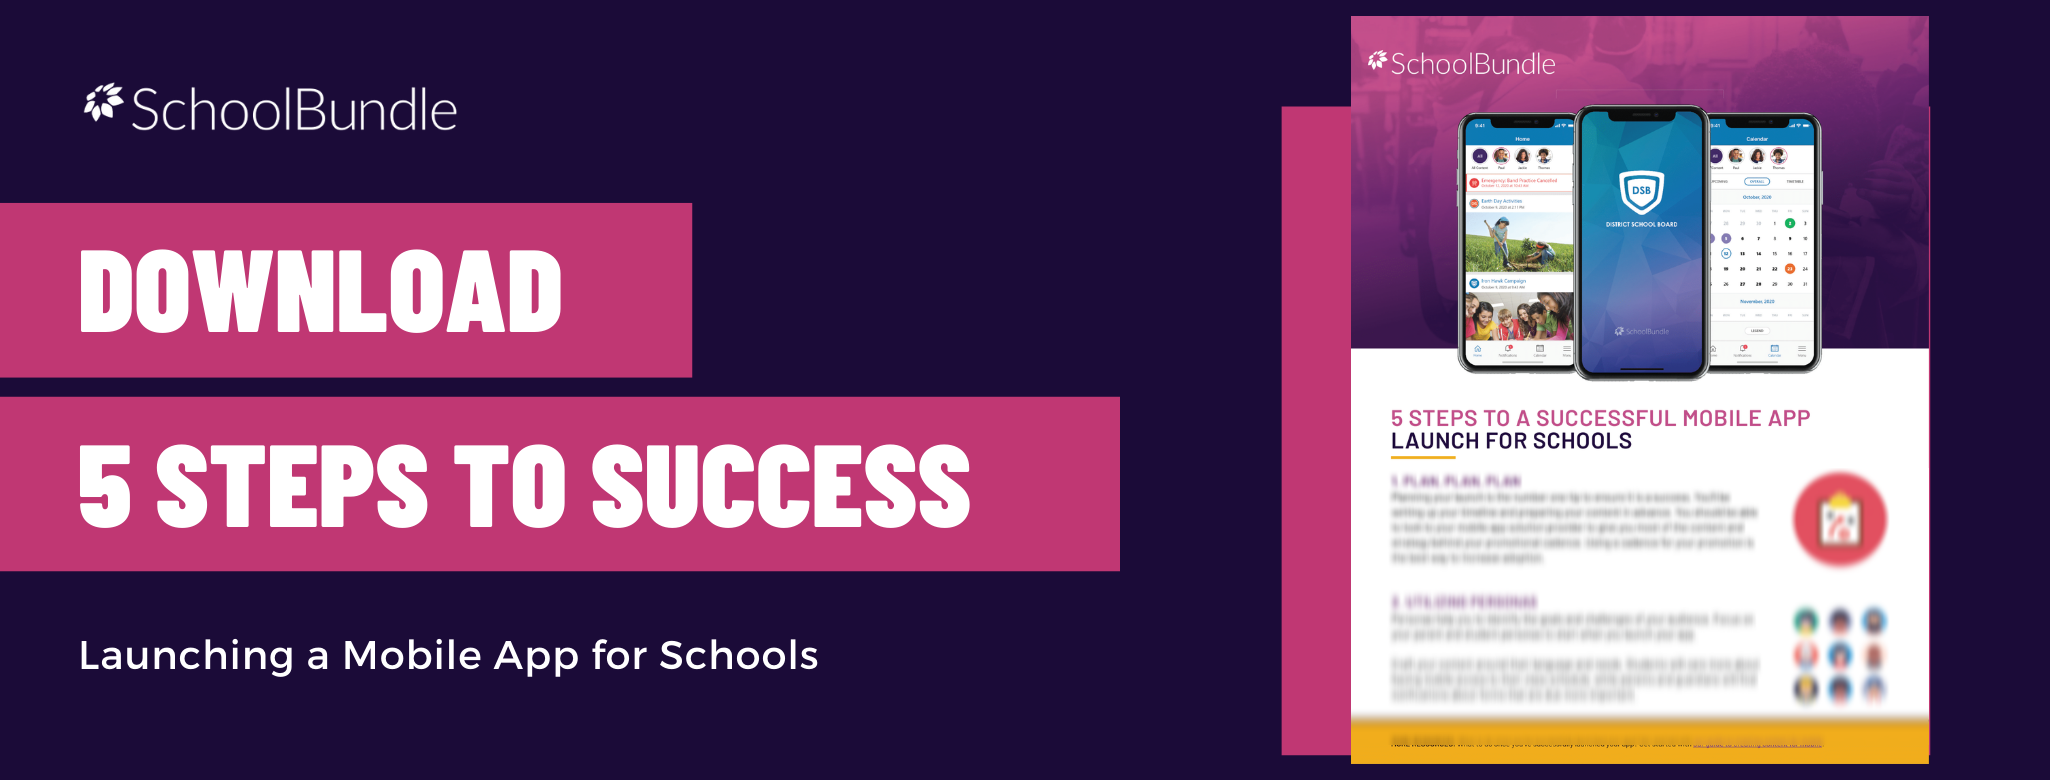 Download 5 Steps to Success whitepaper